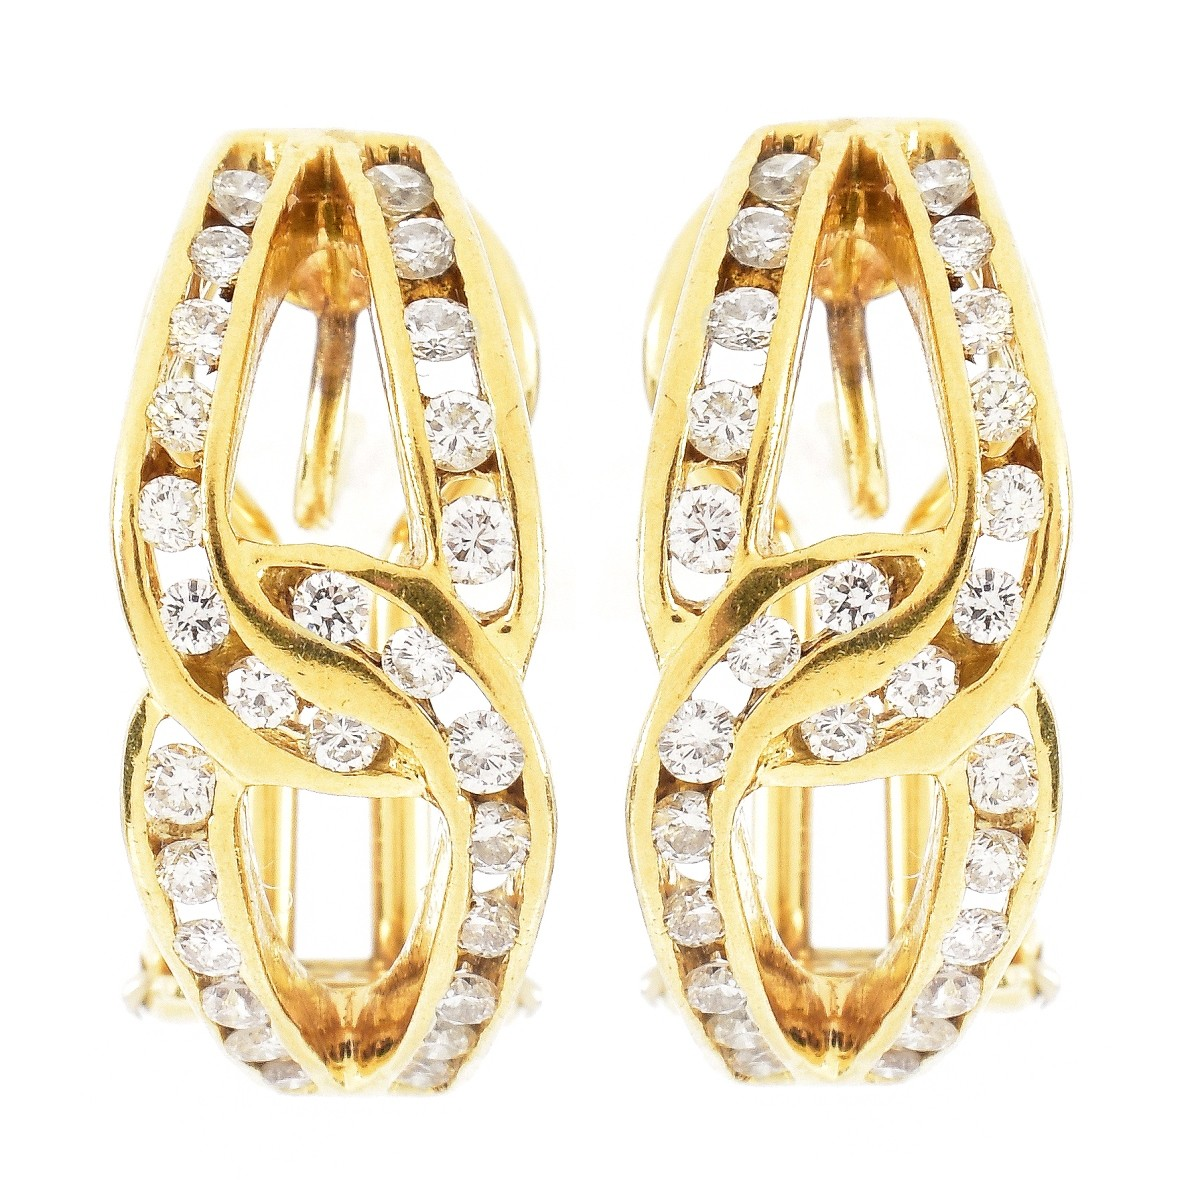 Vintage 1.10ct TW Diamond and 18K Gold Earrings